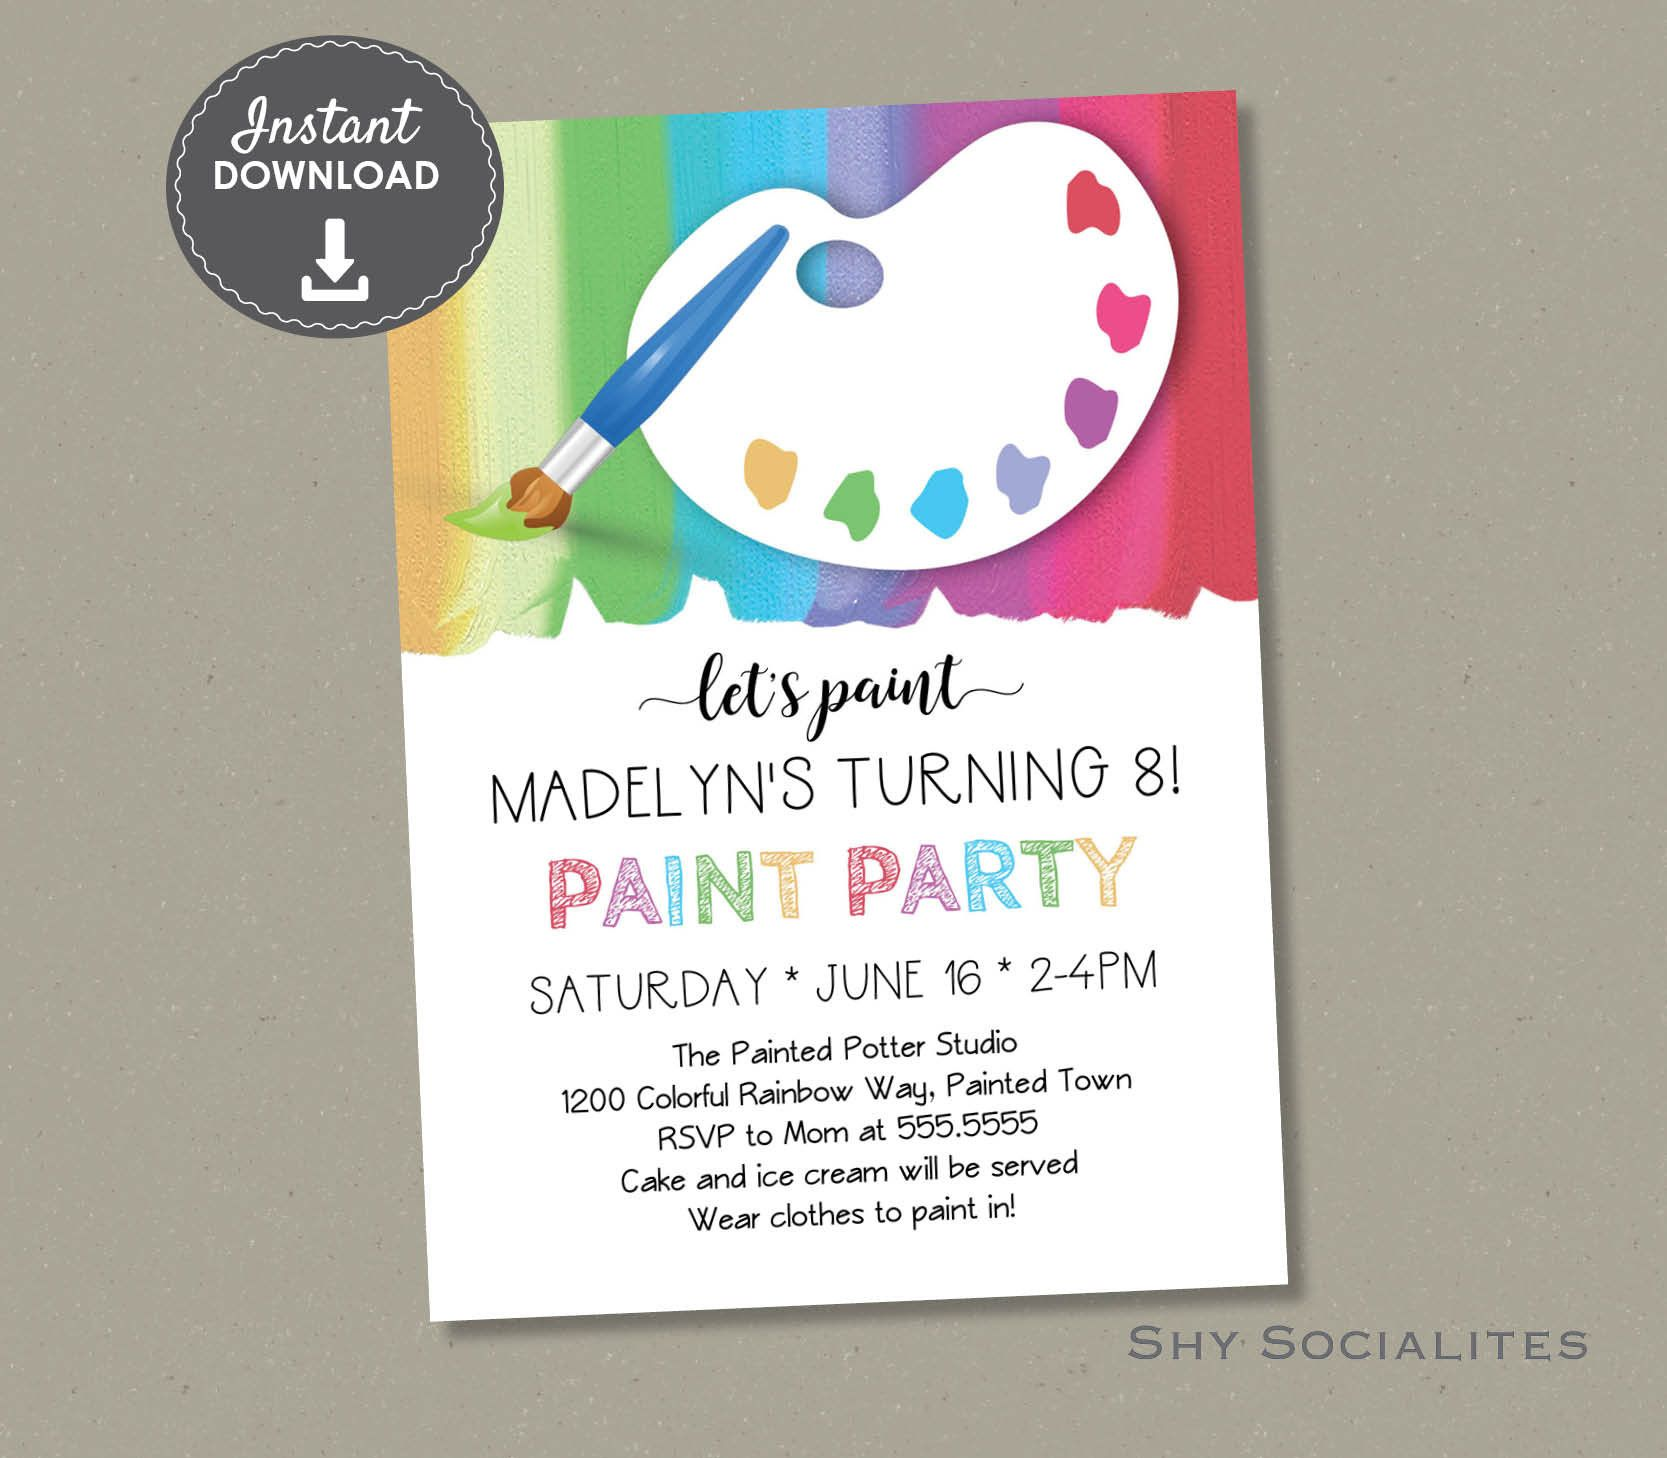 Paint Party Invitation | Art Party, Pottery Painting Birthday, Craft ...